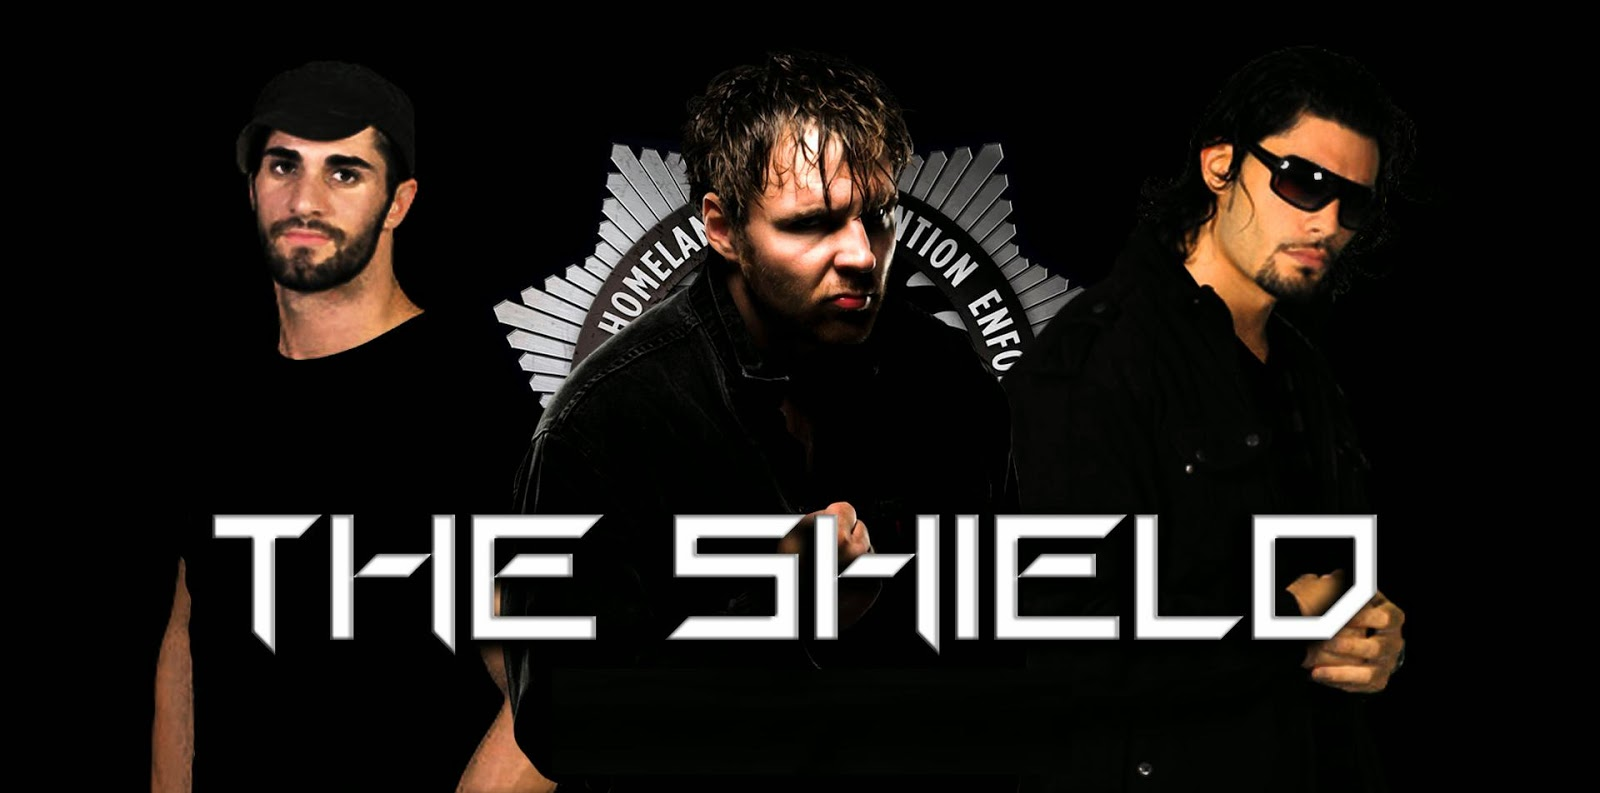 Free Download The Shield Hd Wallpapers Download Wwe Hd Wallpaper Free 1600x793 For Your Desktop Mobile Tablet Explore 50 Wwe The Shield Wallpaper Wwe Wallpaper Wwe Seth Rollins Wallpaper